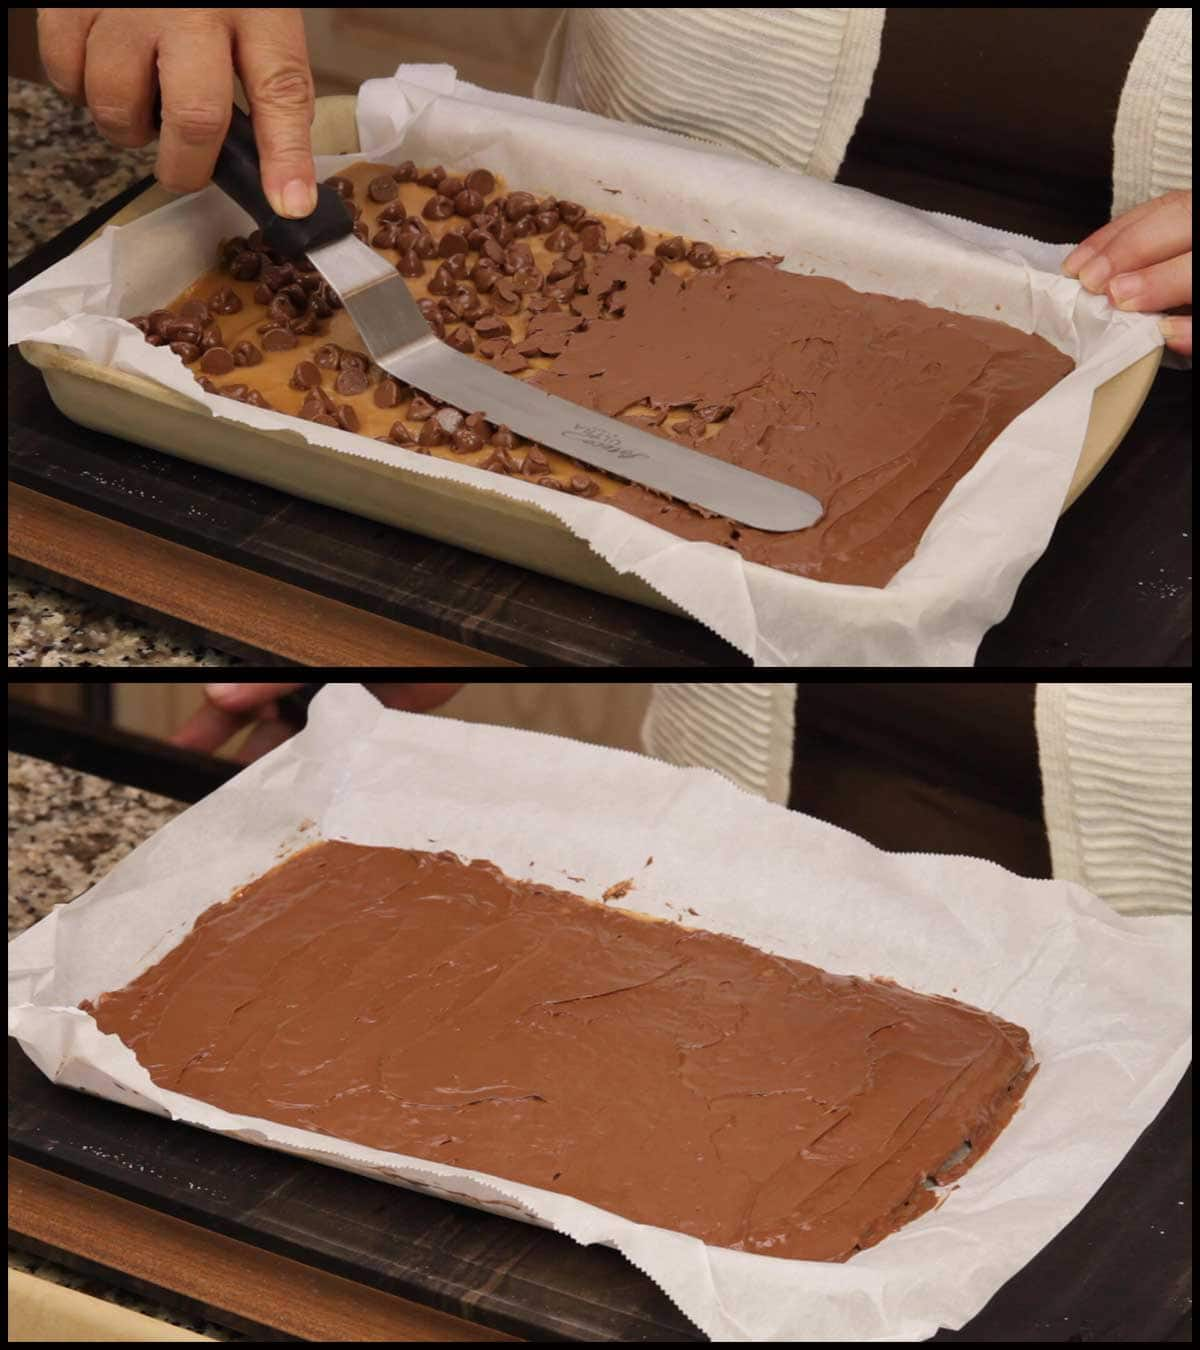 spreading the chocolate over the toffee